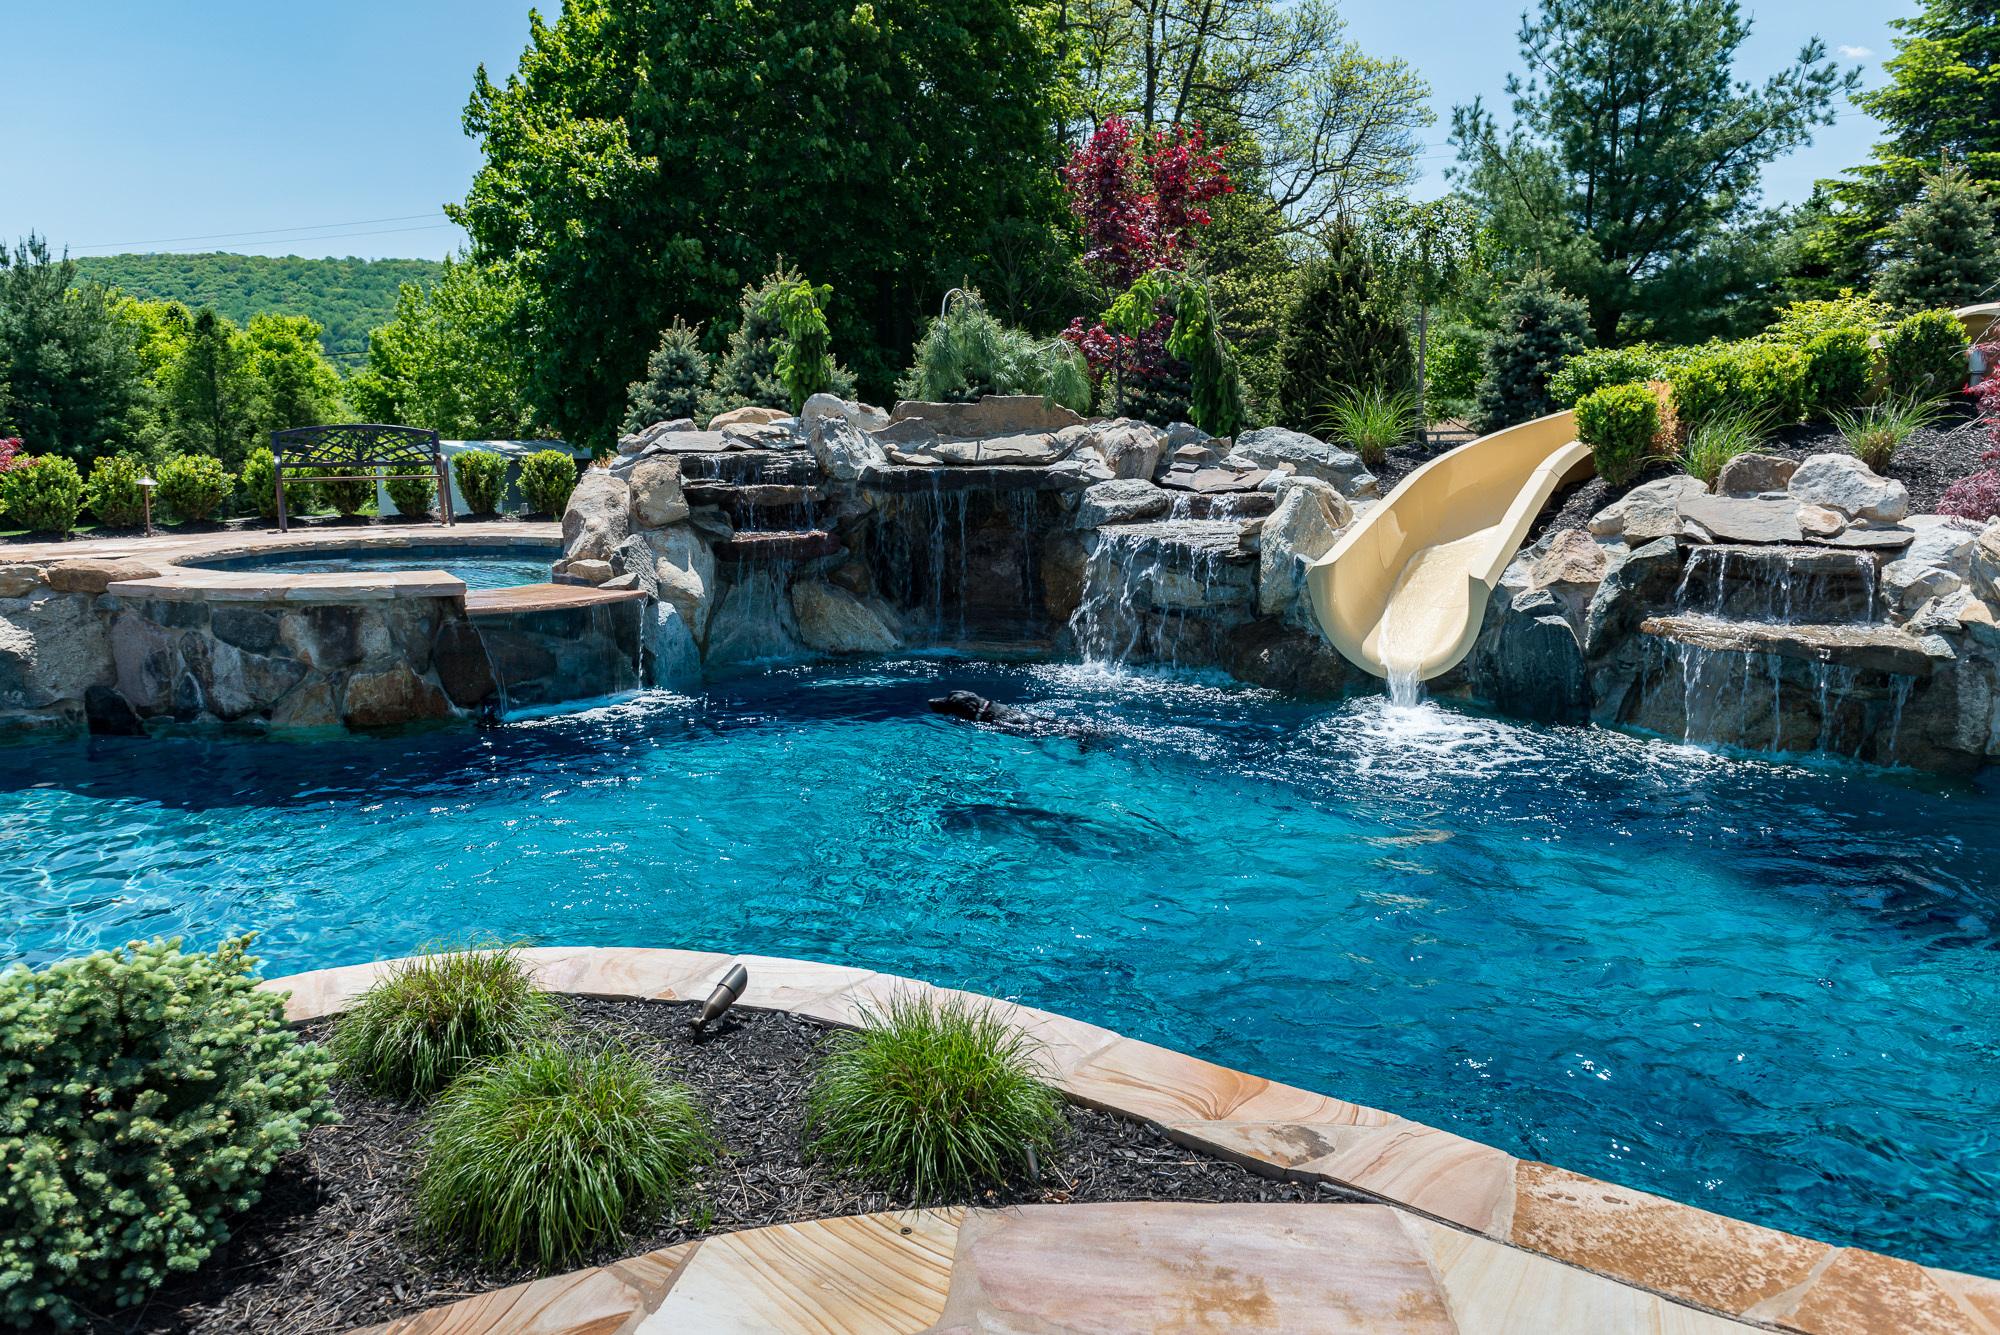 Bloomsbury Nj Custom Inground Swimming Pool Design Construction